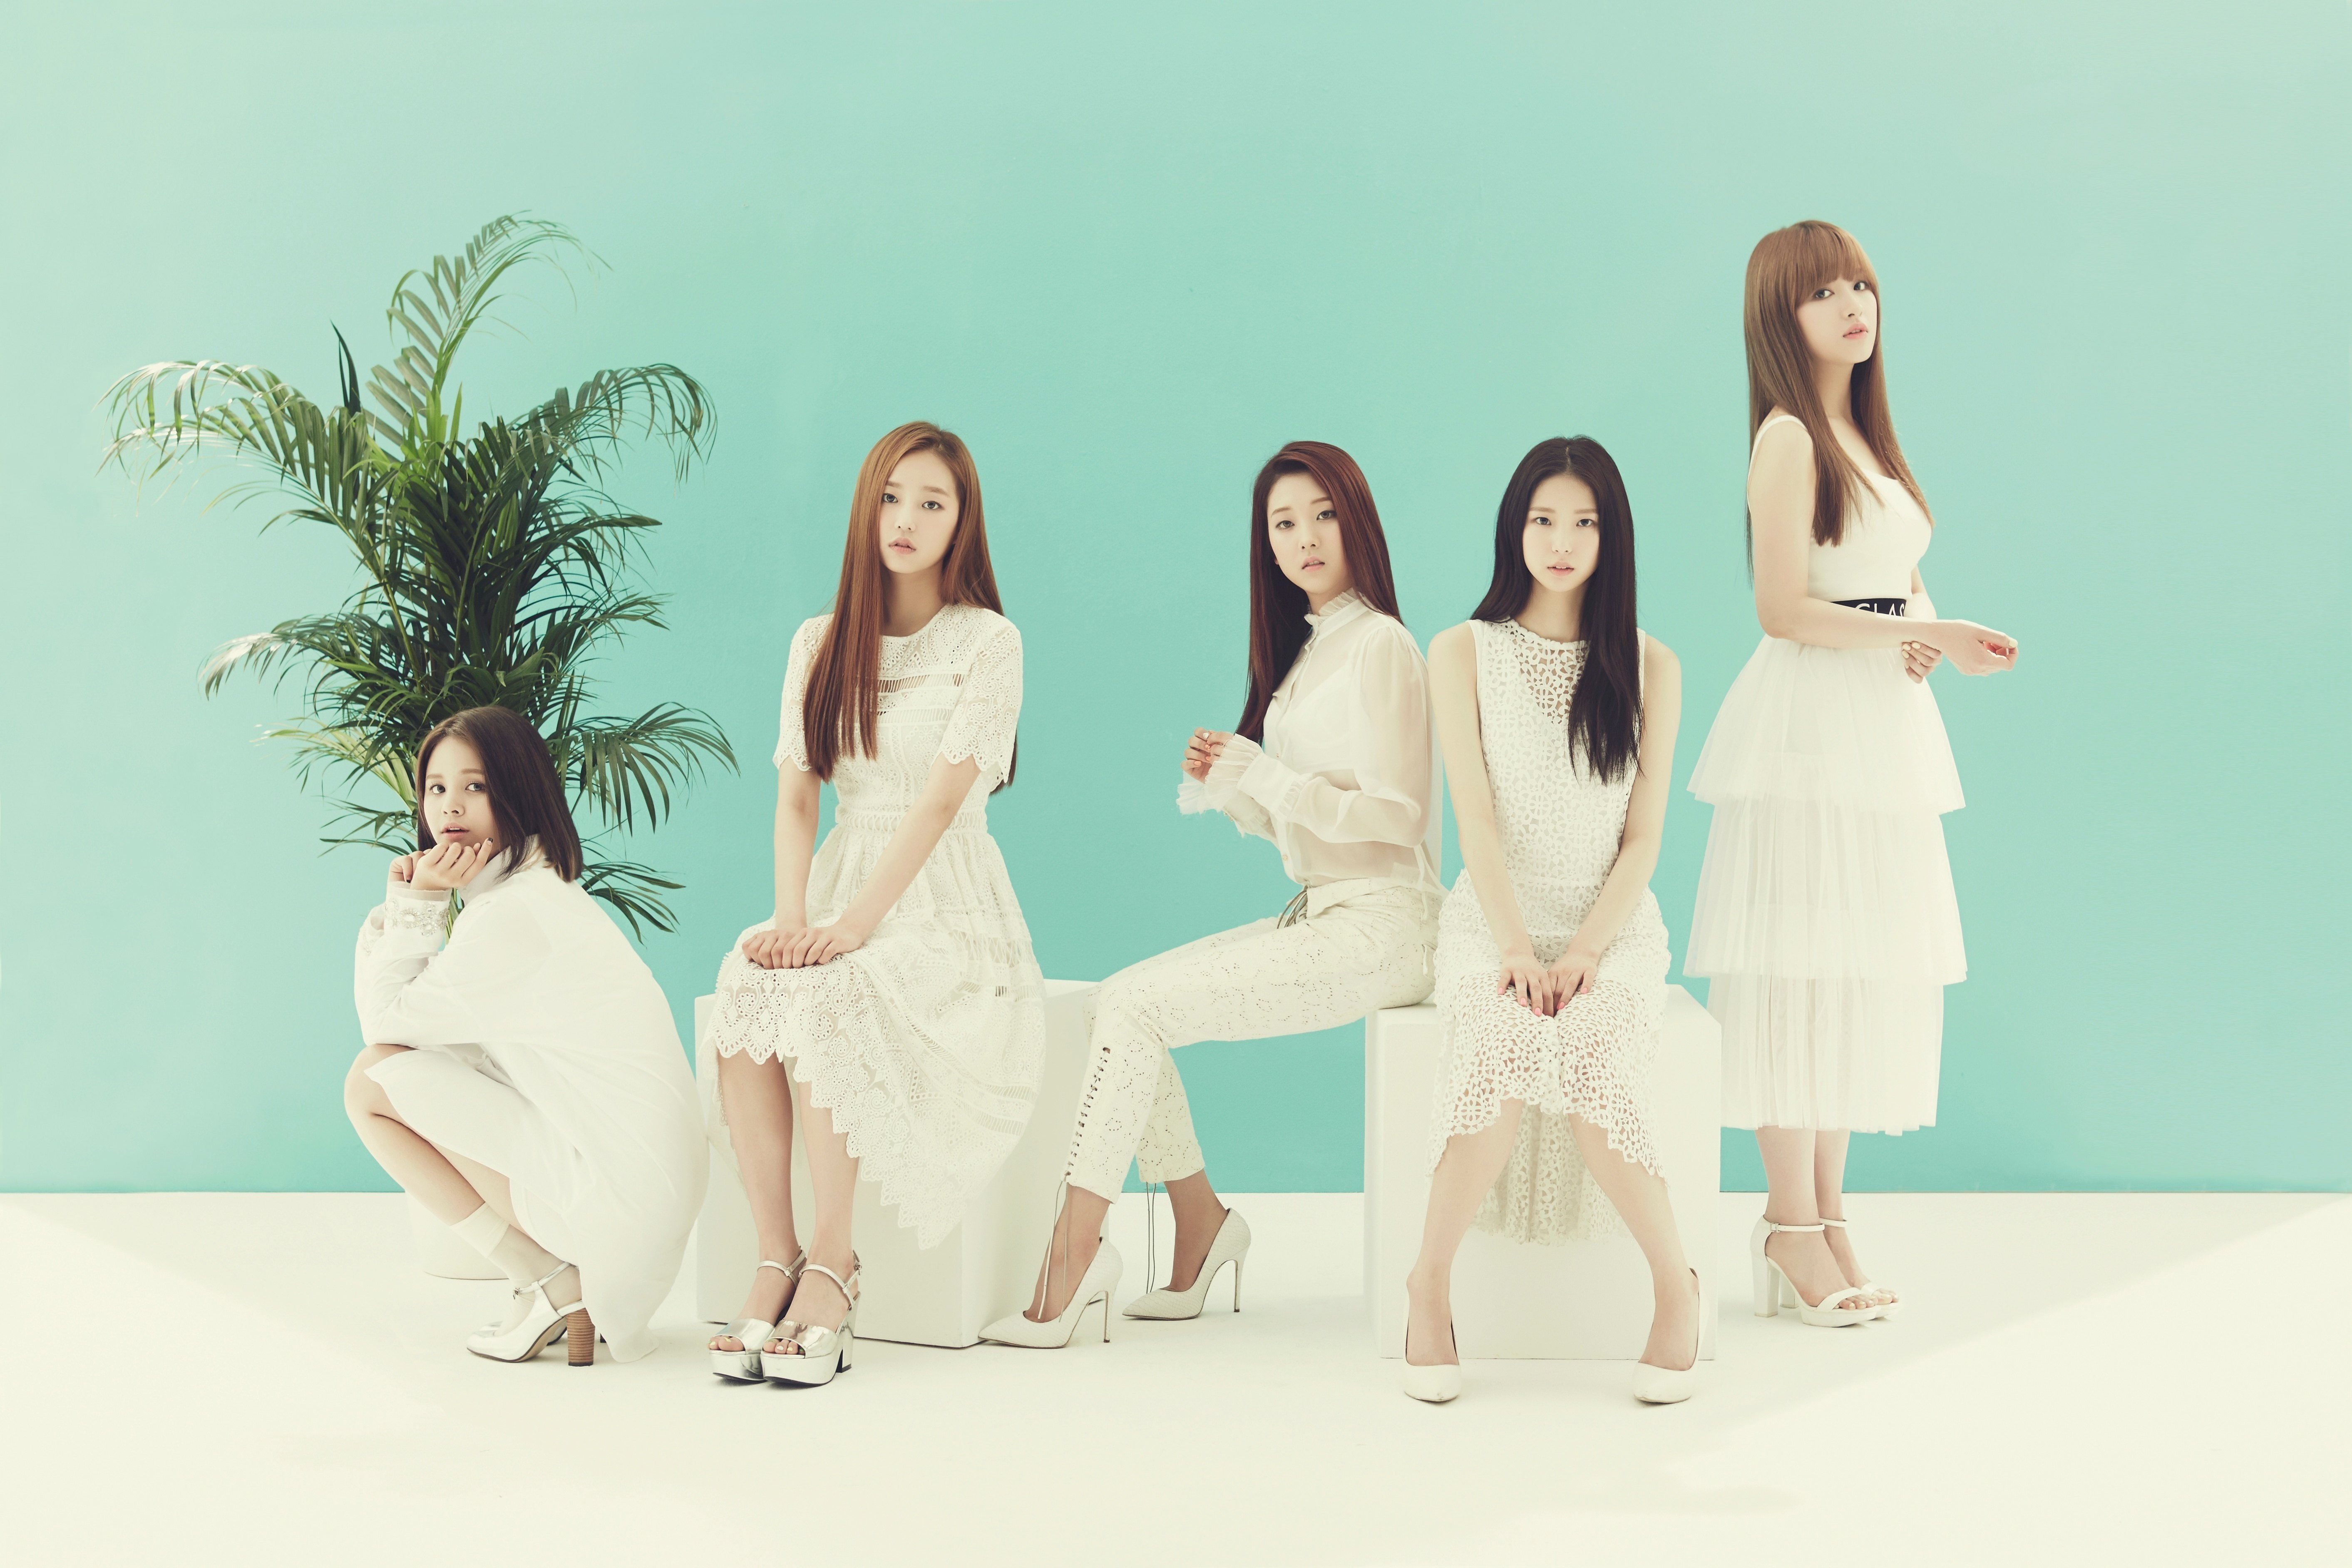 """Clc Profile ̔¨ì—˜ì""""¨ K Pop Database Dbkpop Com They debuted on march 19, 2015 with their ep first love and the title track pepe. k pop database"""